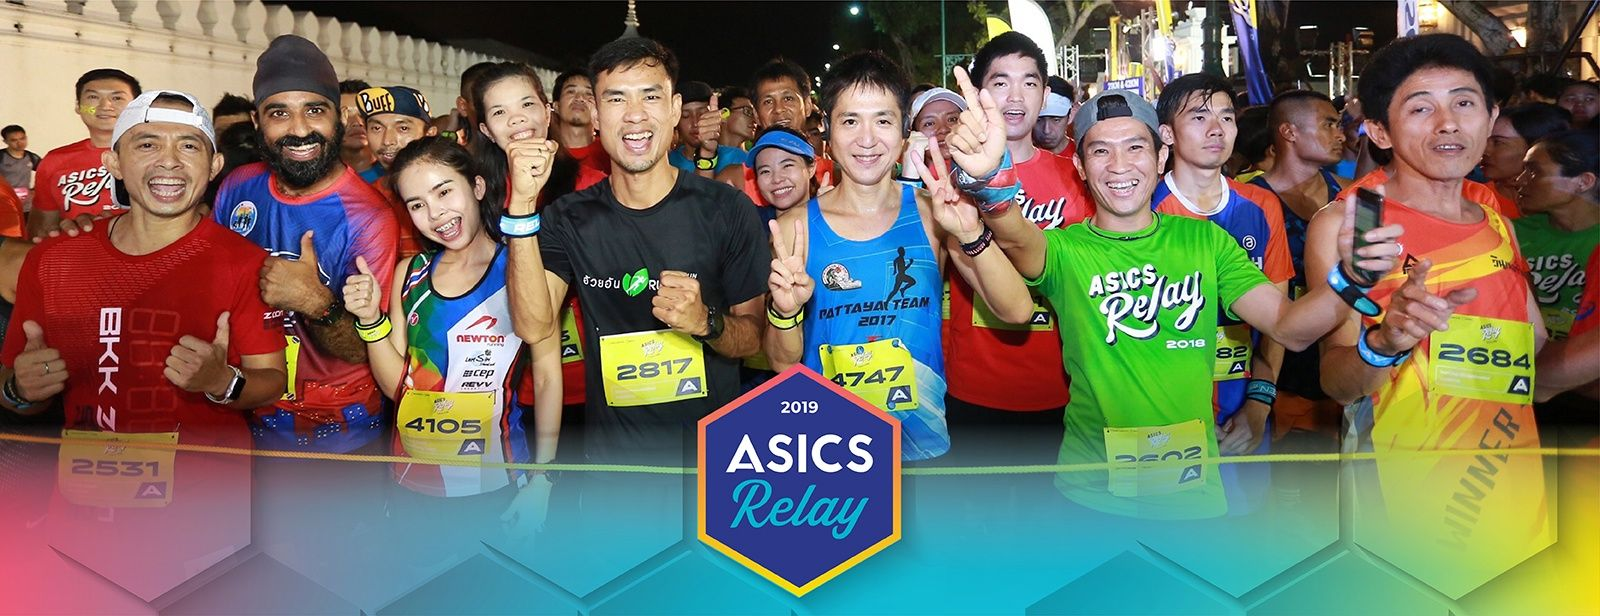 ASICS Relay_Website Subpage